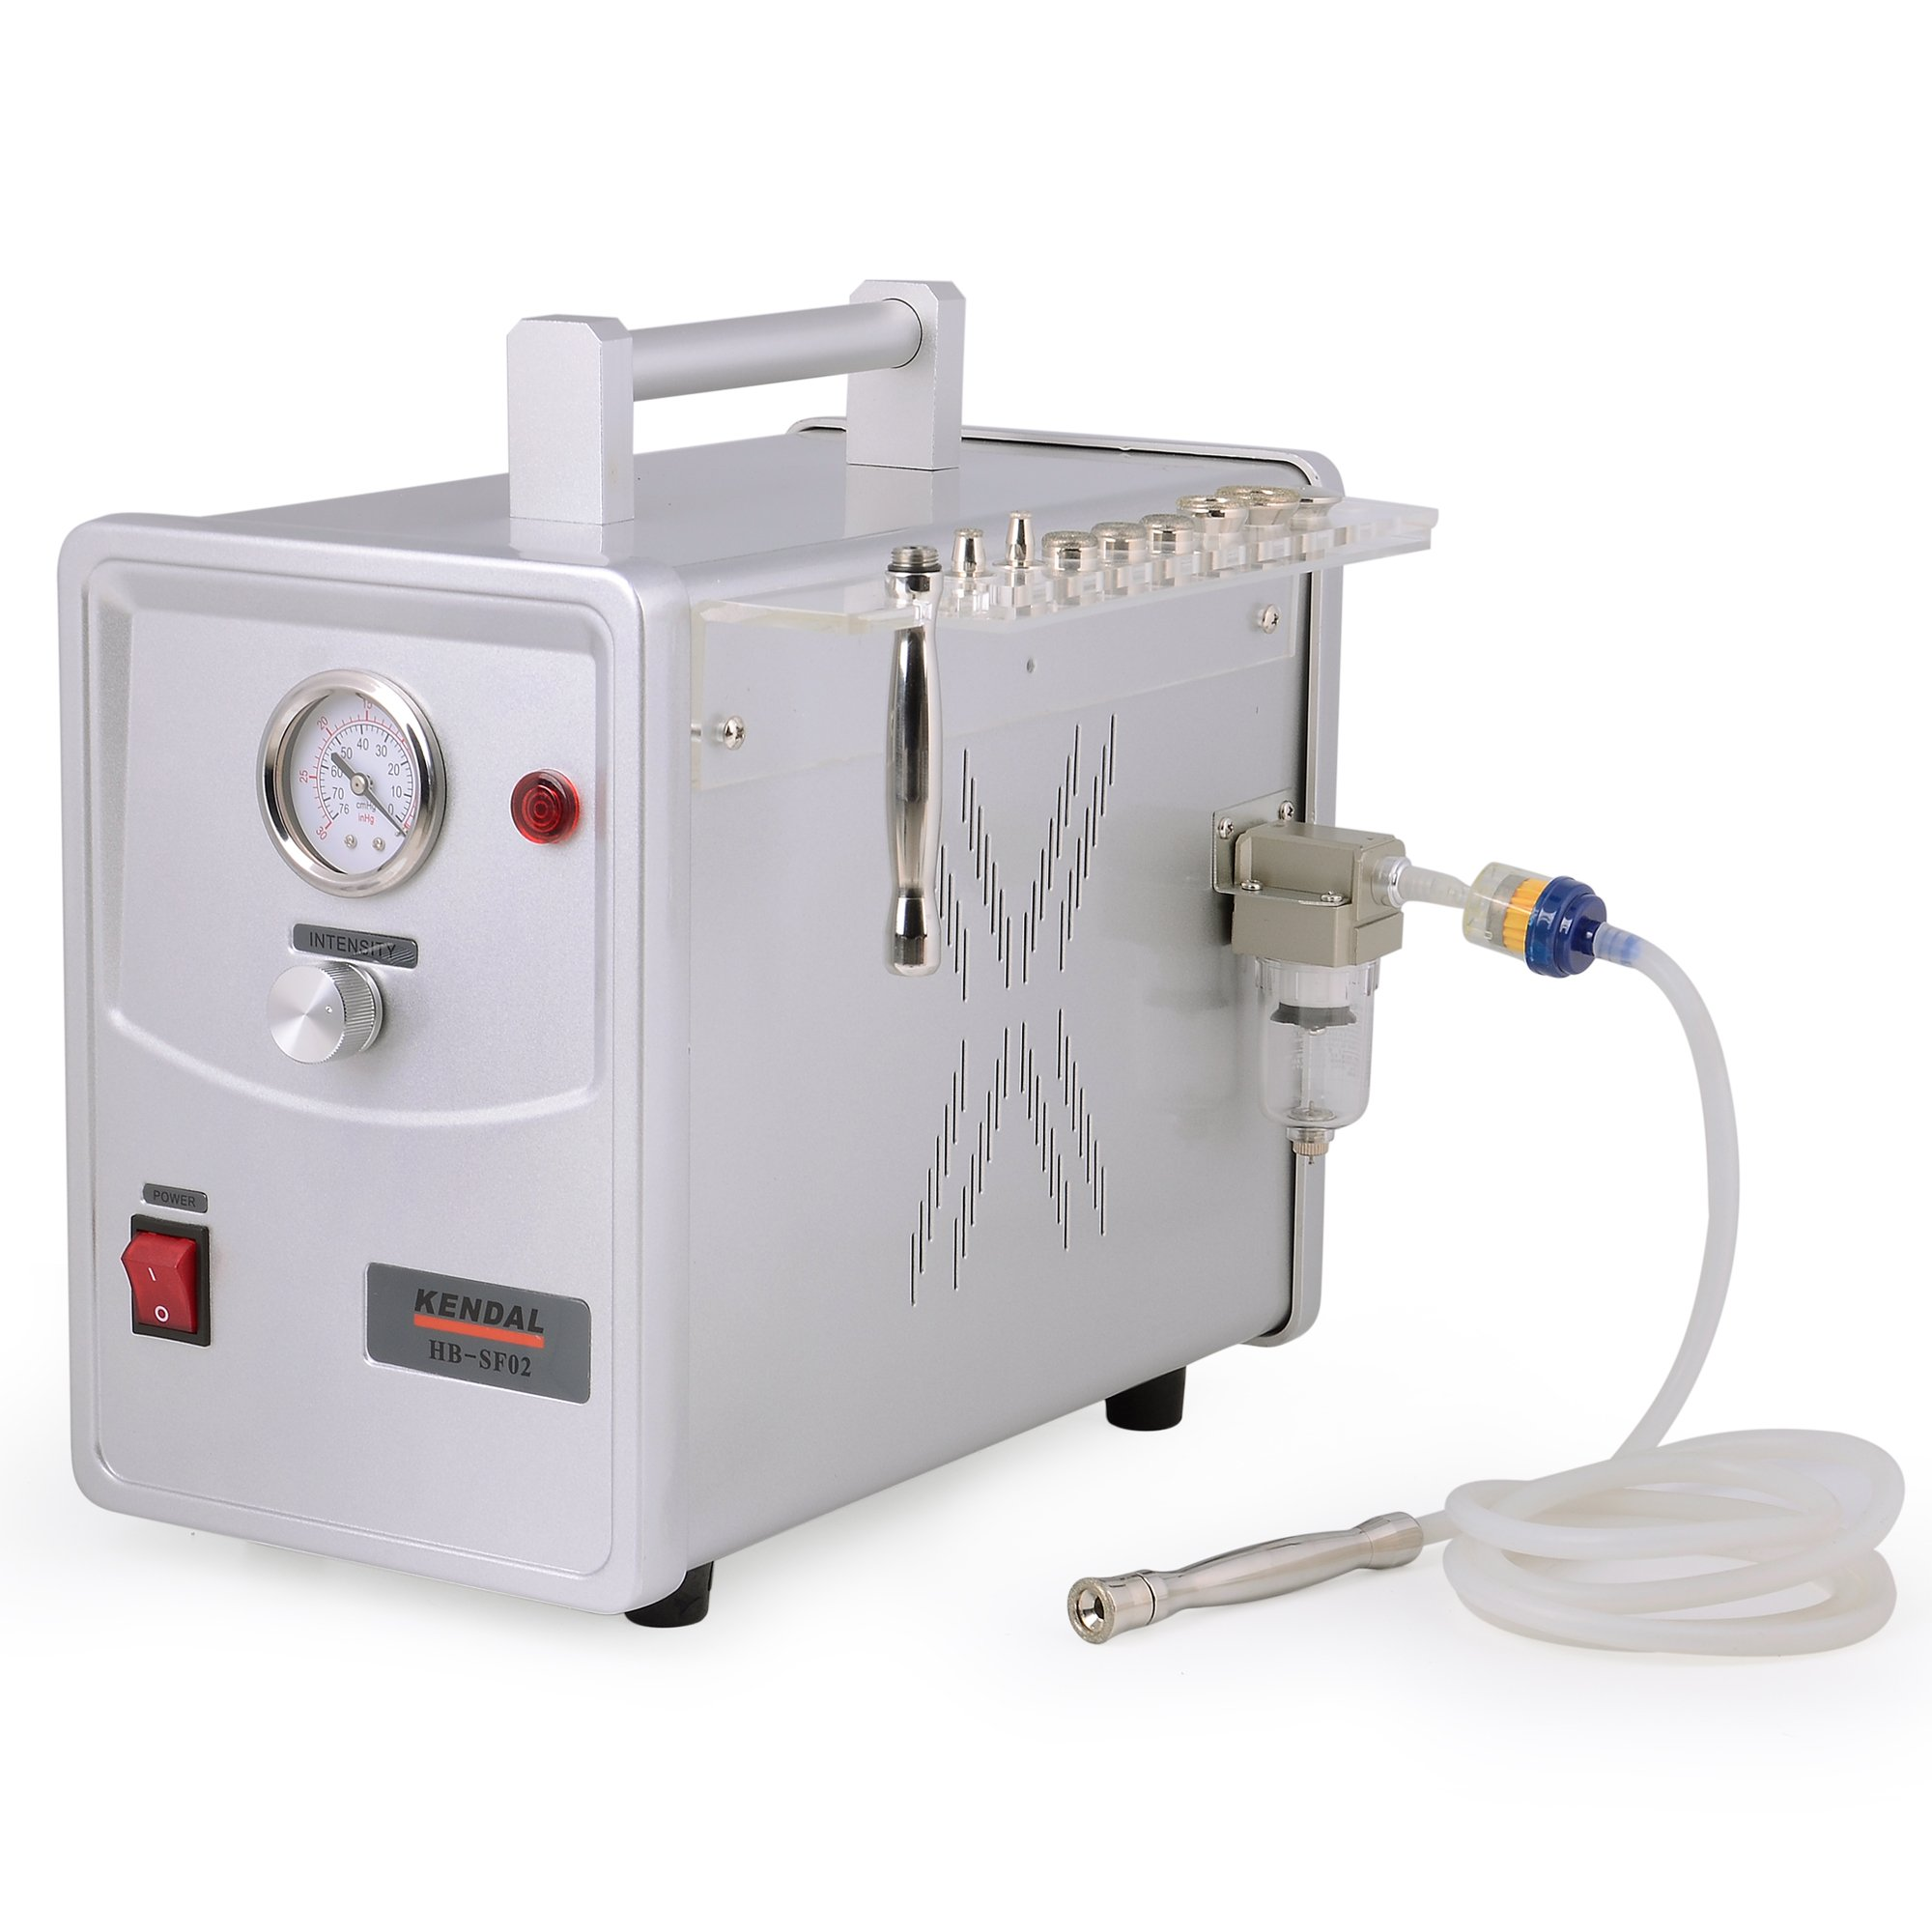 Kendal Professional Diamond Microdermabrasion Machine HB-SF02 by Kendal